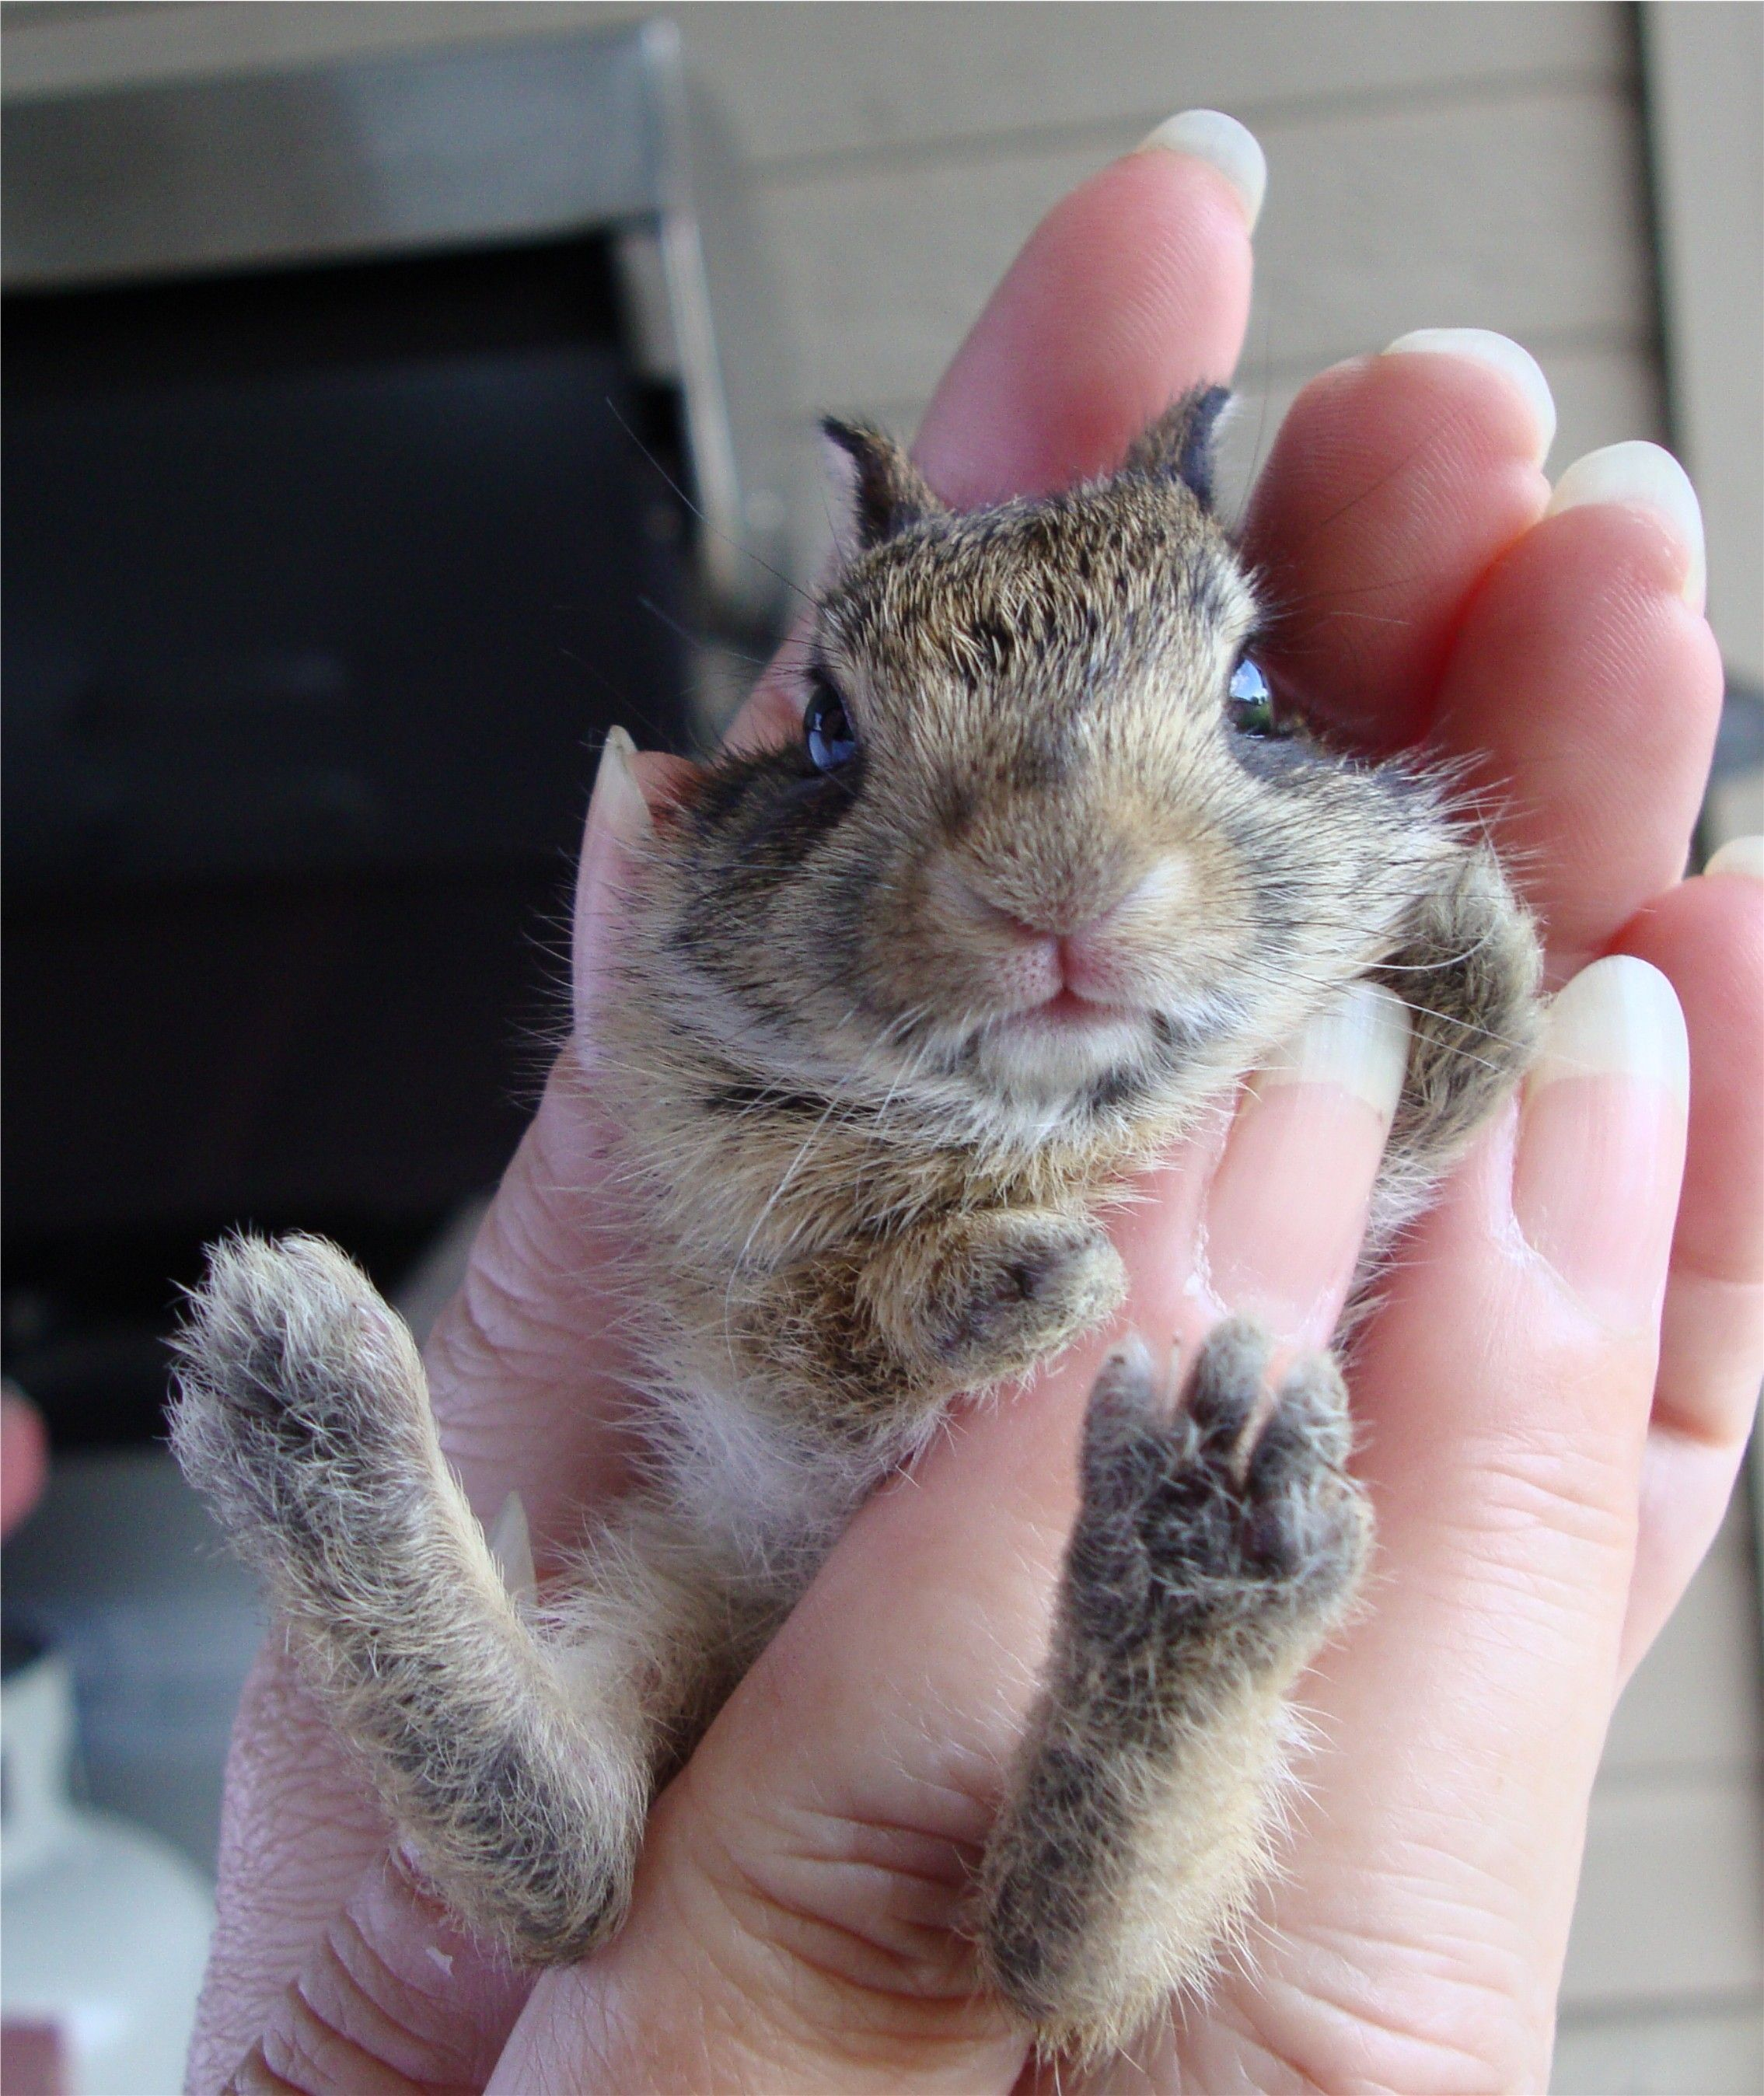 Every year rabbits have babies in the big flower pots in